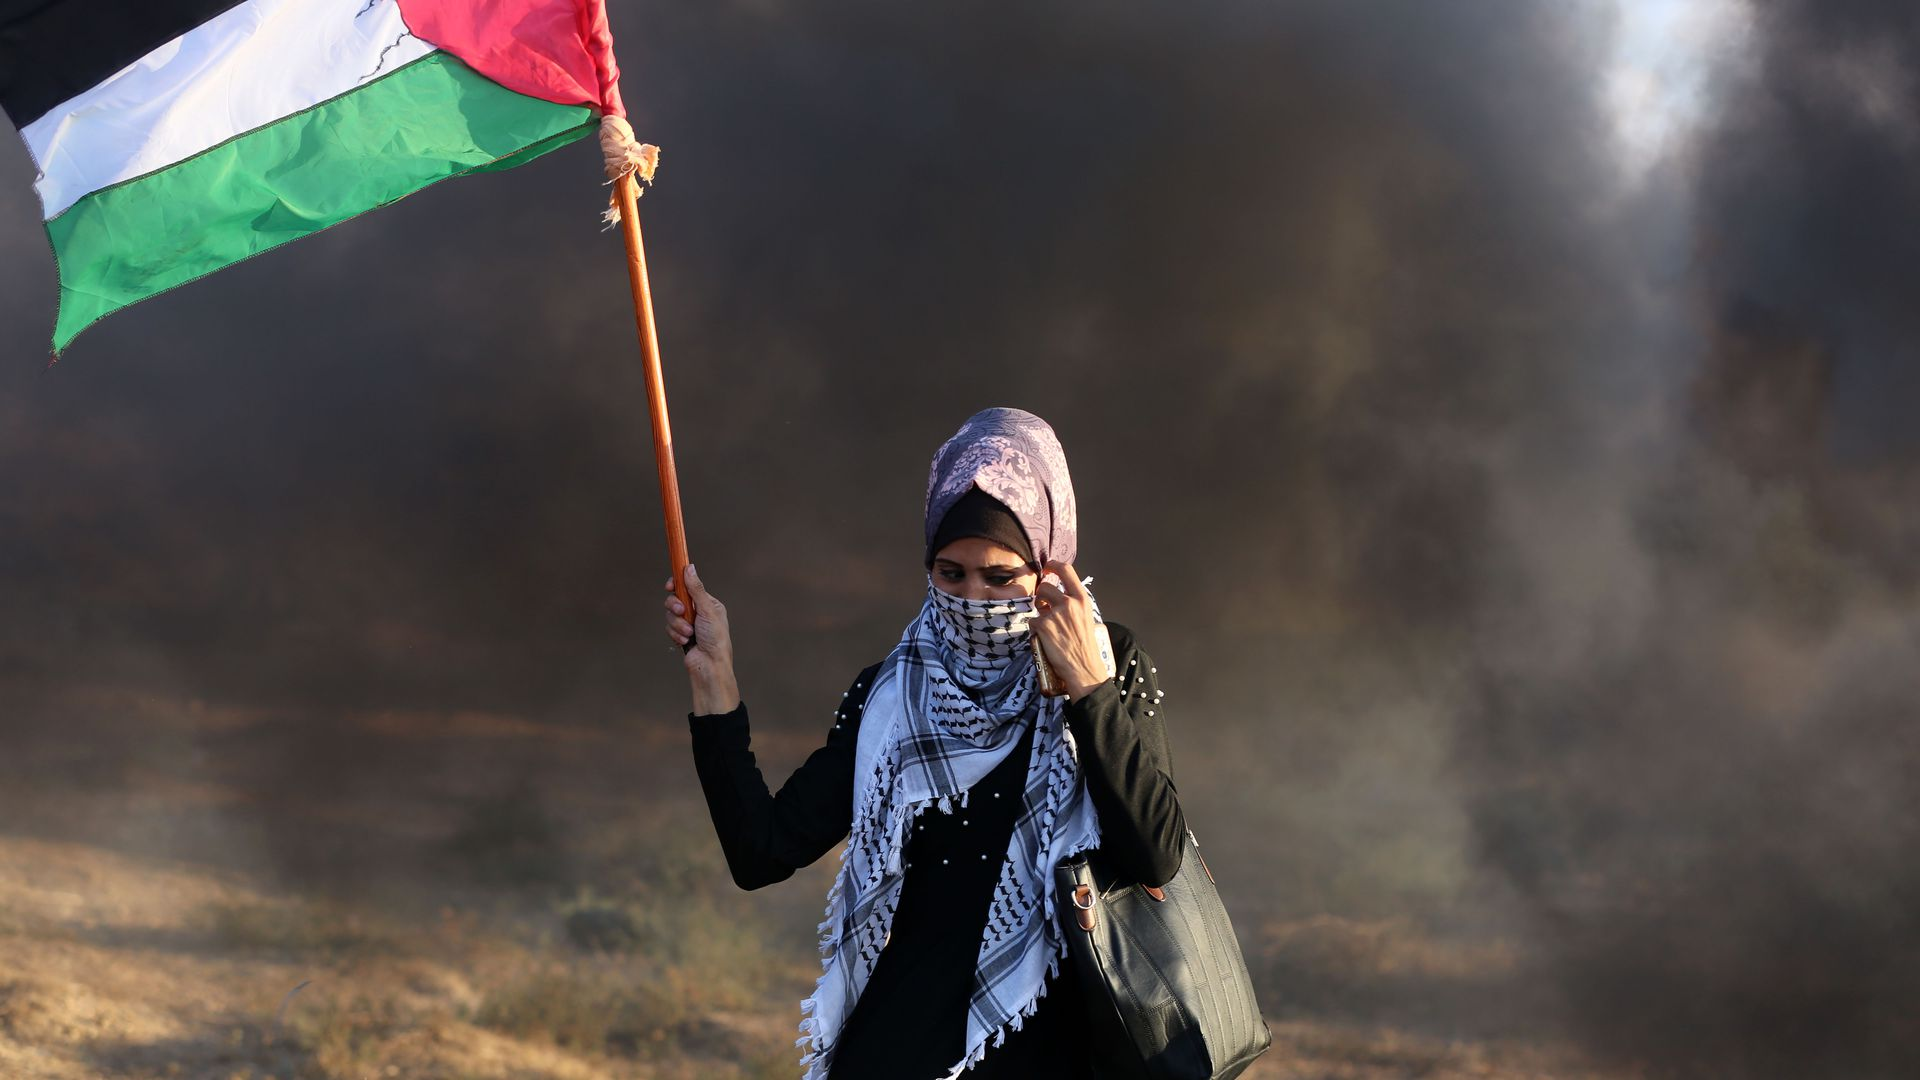 A woman holding a Palestinian flag, standing in black smoke.